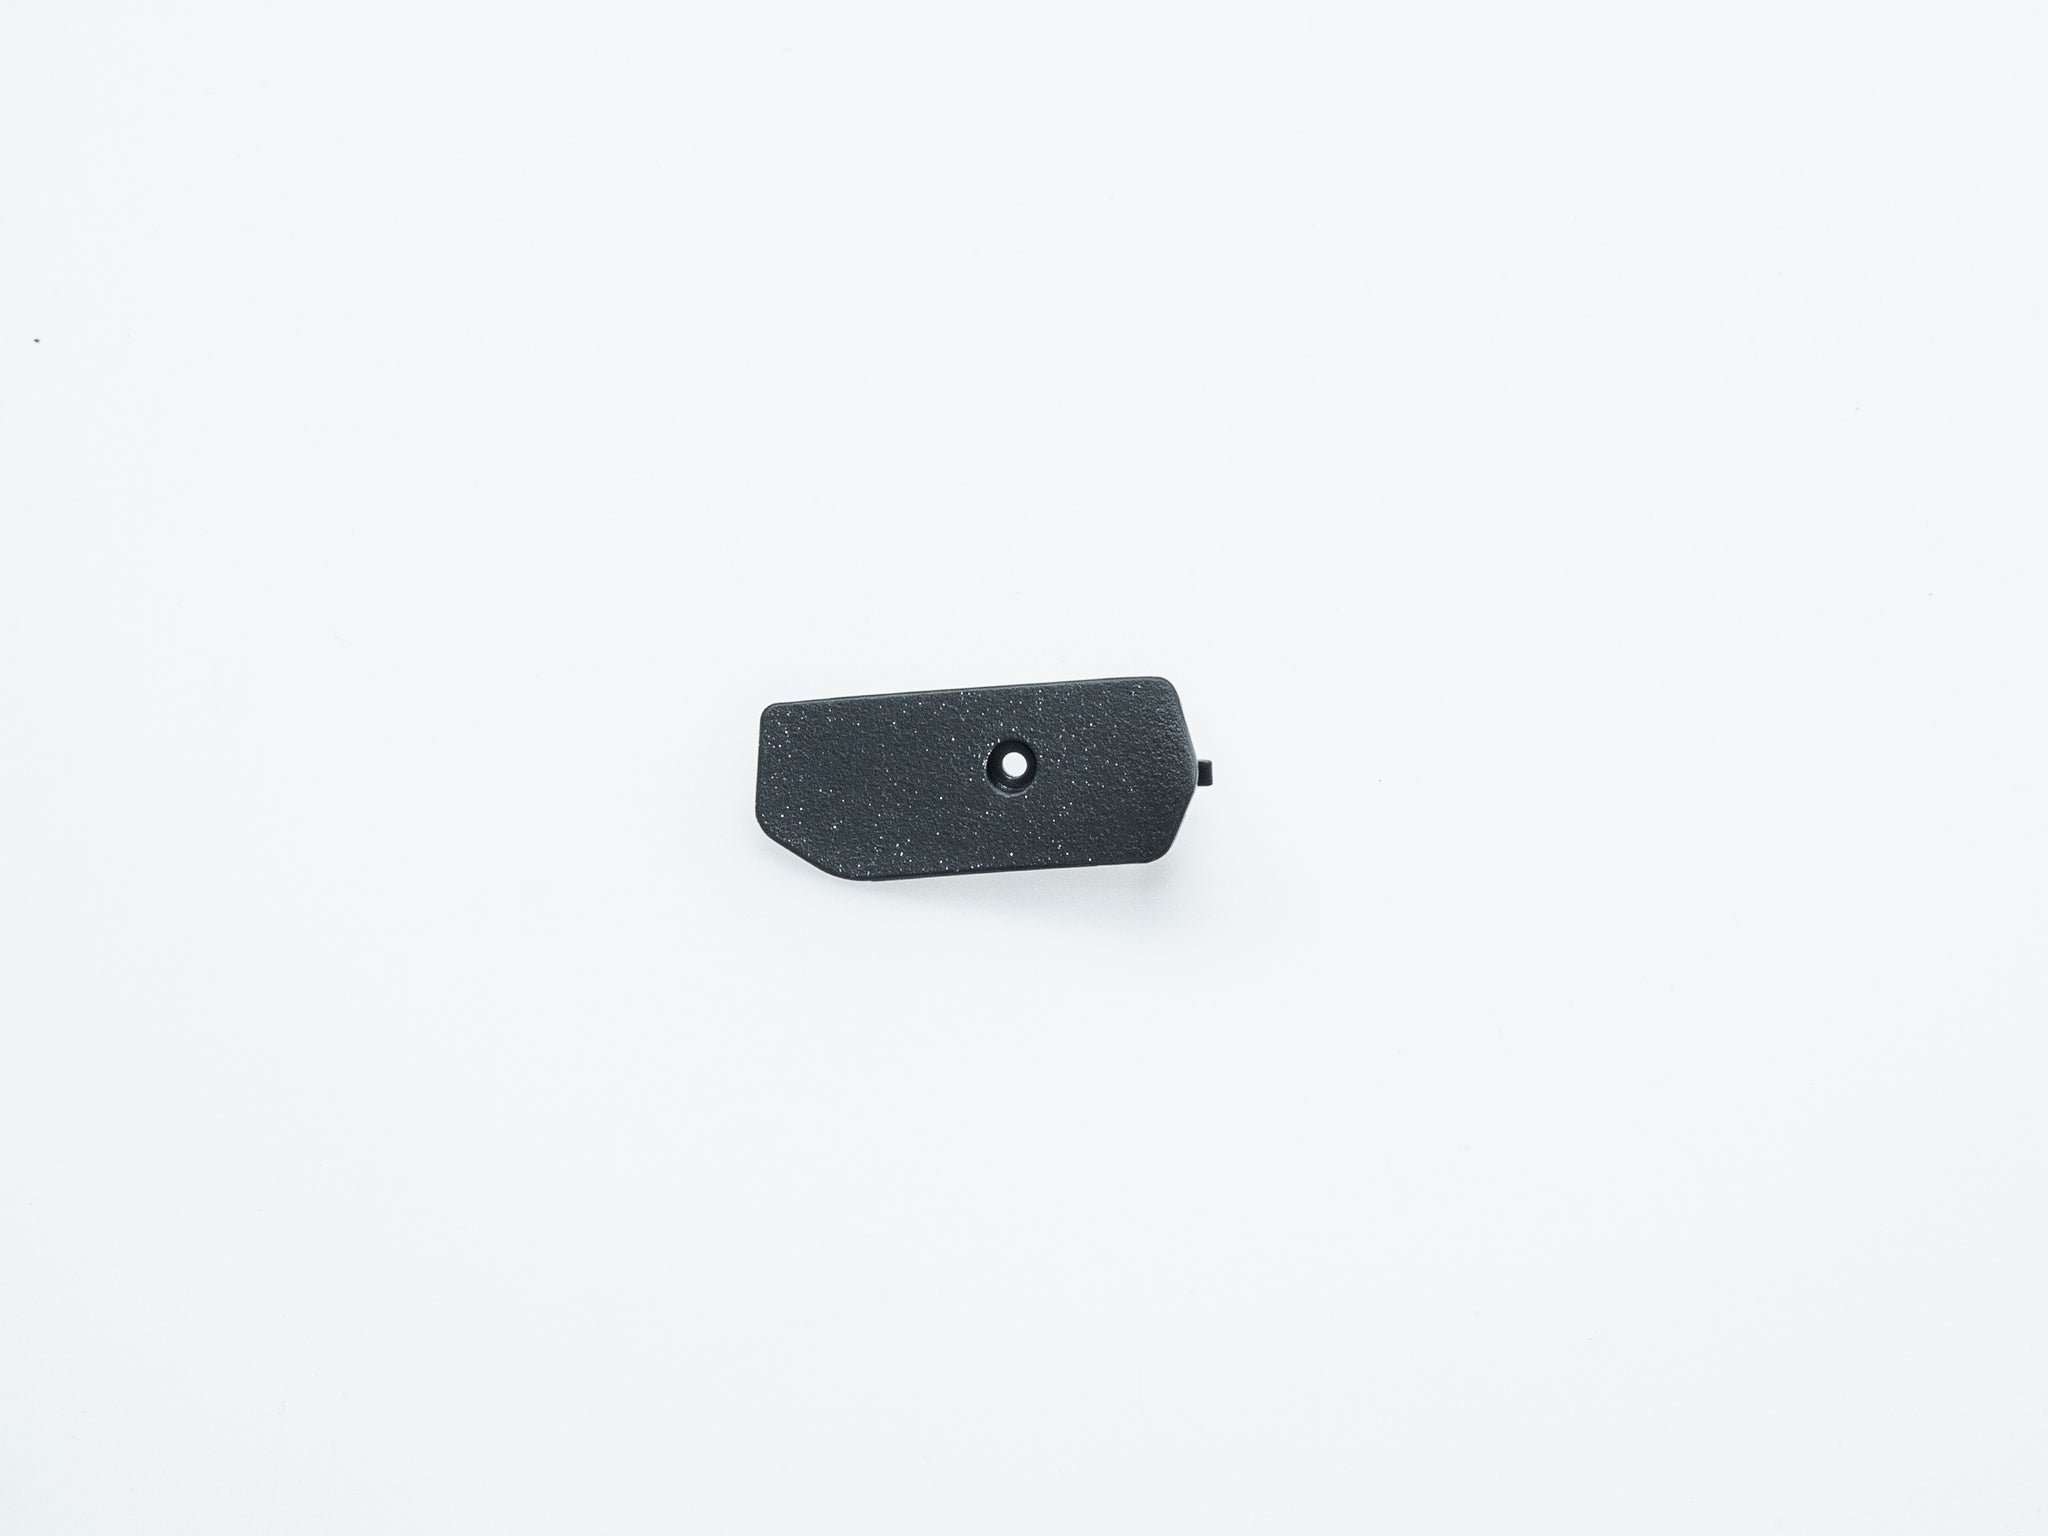 DJI Mavic Pro Axis Bottom Shell Cover (Right)